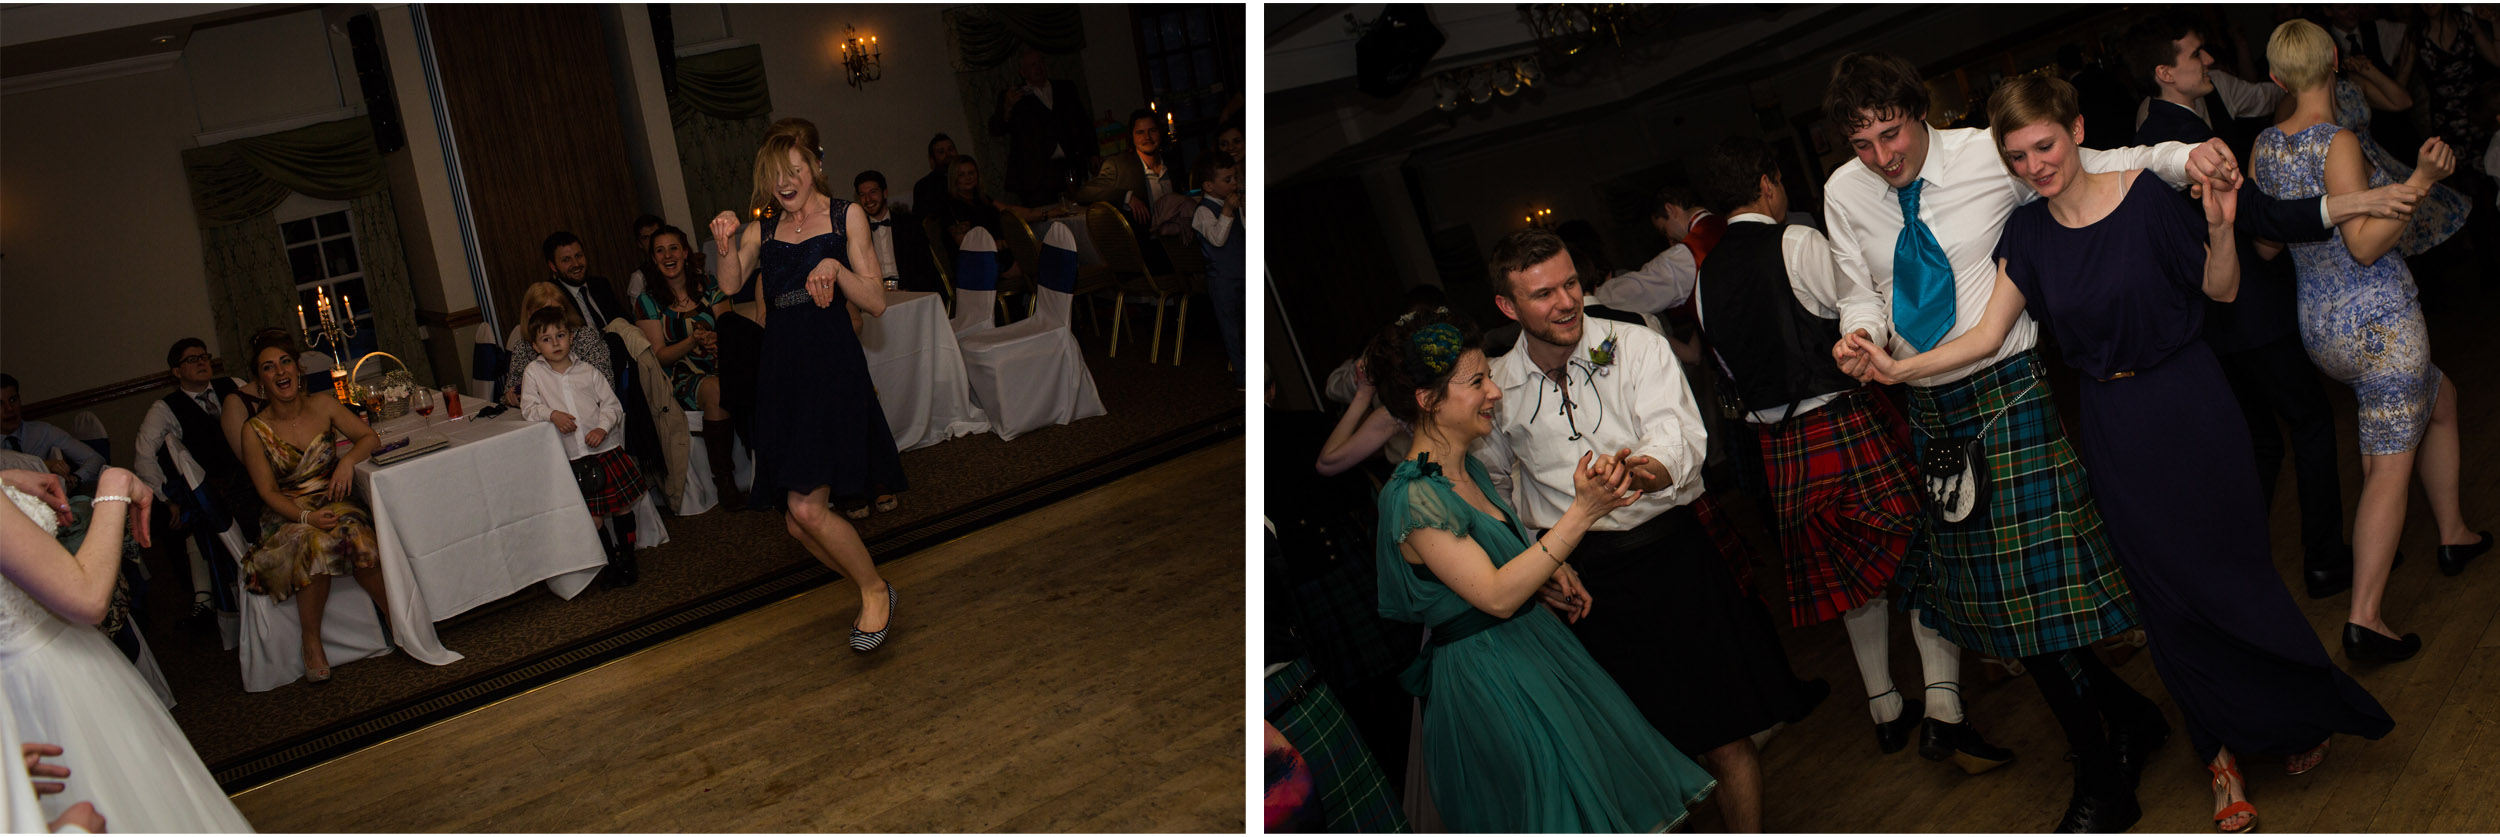 Sophie and Ryan's wedding-88.jpg